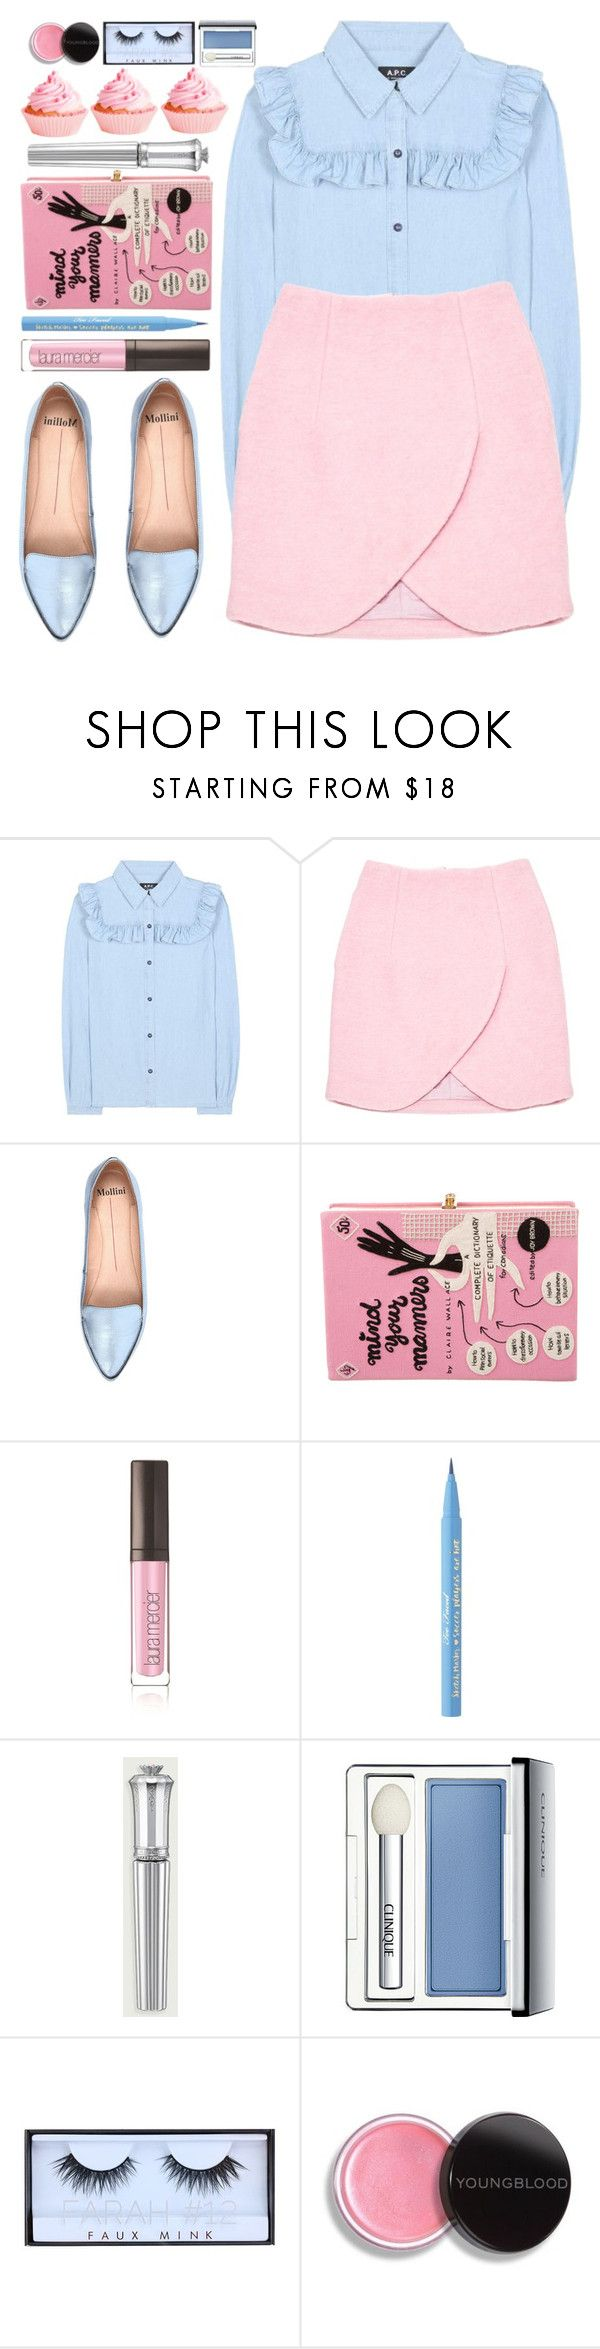 """""""#1091 Melissa"""" by blueberrylexie ❤ liked on Polyvore featuring A.P.C., Carven, Mollini, Olympia Le-Tan, Laura Mercier, Too Faced Cosmetics, Morgan Lane, Clinique, Huda Beauty and Youngblood"""